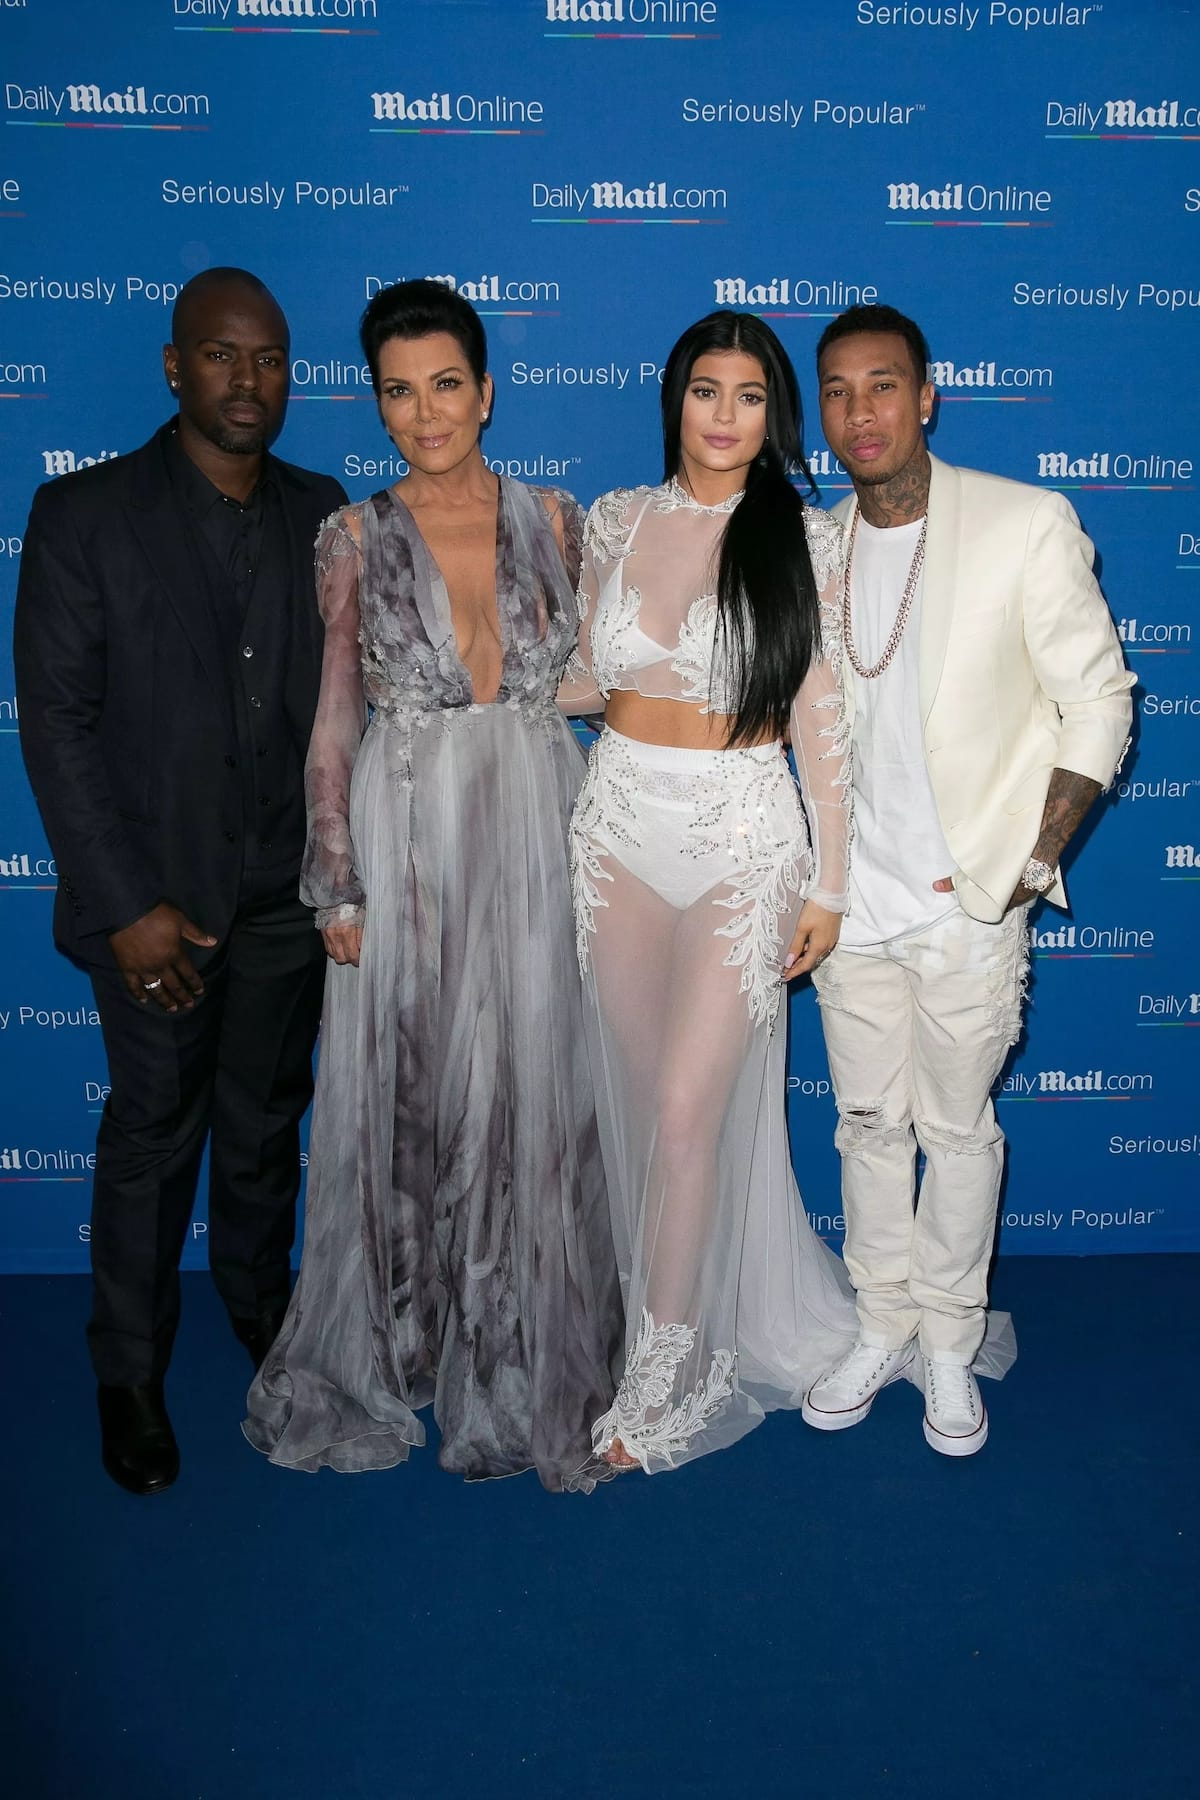 Kylie Jenner and Tyga with Kris and Corey